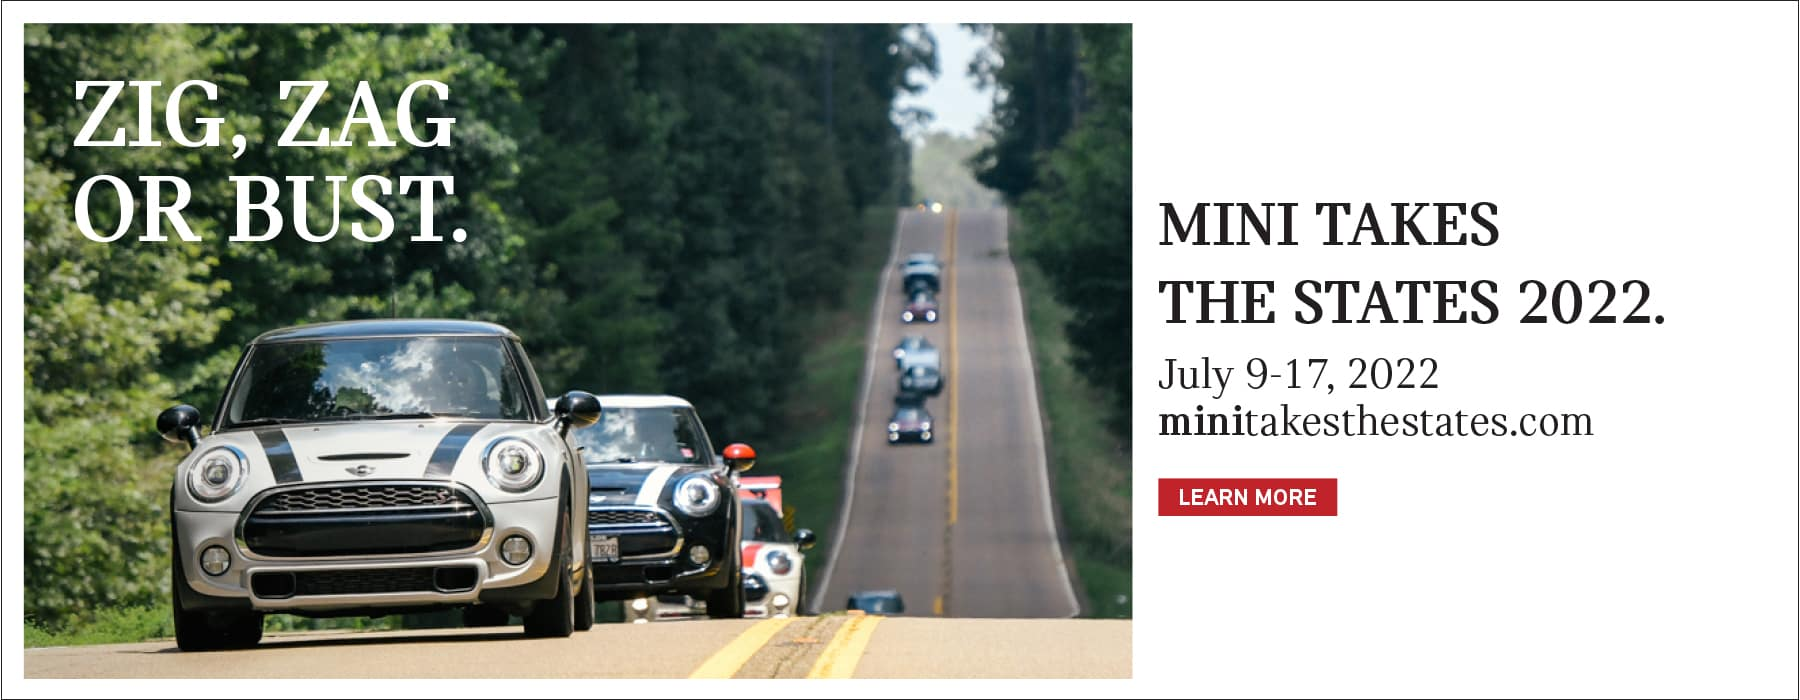 Click to learn more about MINI Takes the States 2022! Image shows a line of MINI vehicles driving up a hill.